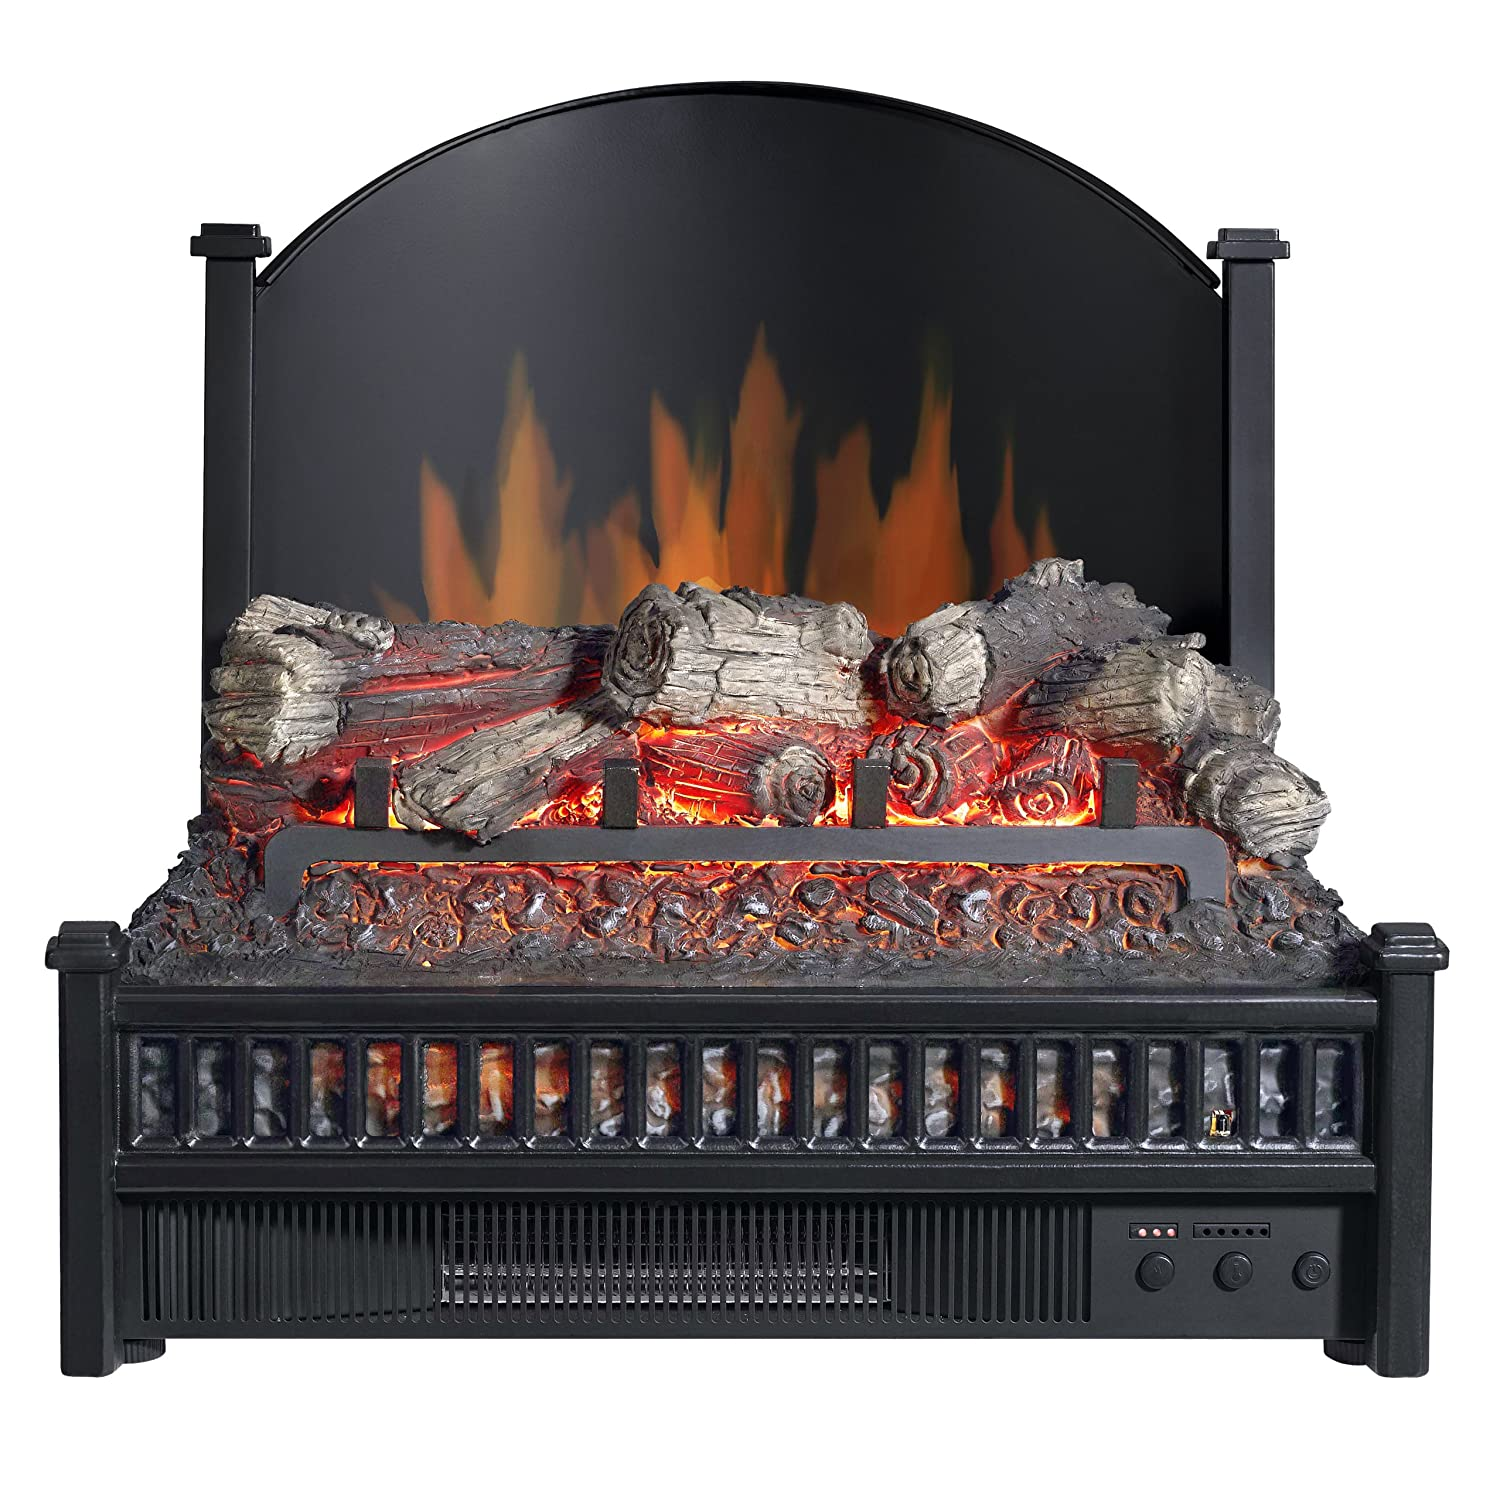 Buy Pleasant Hearth Electric Insert with Heater: Fireplace & Stove Accessories - Amazon.com ? FREE DELIVERY possible on eligible purchases